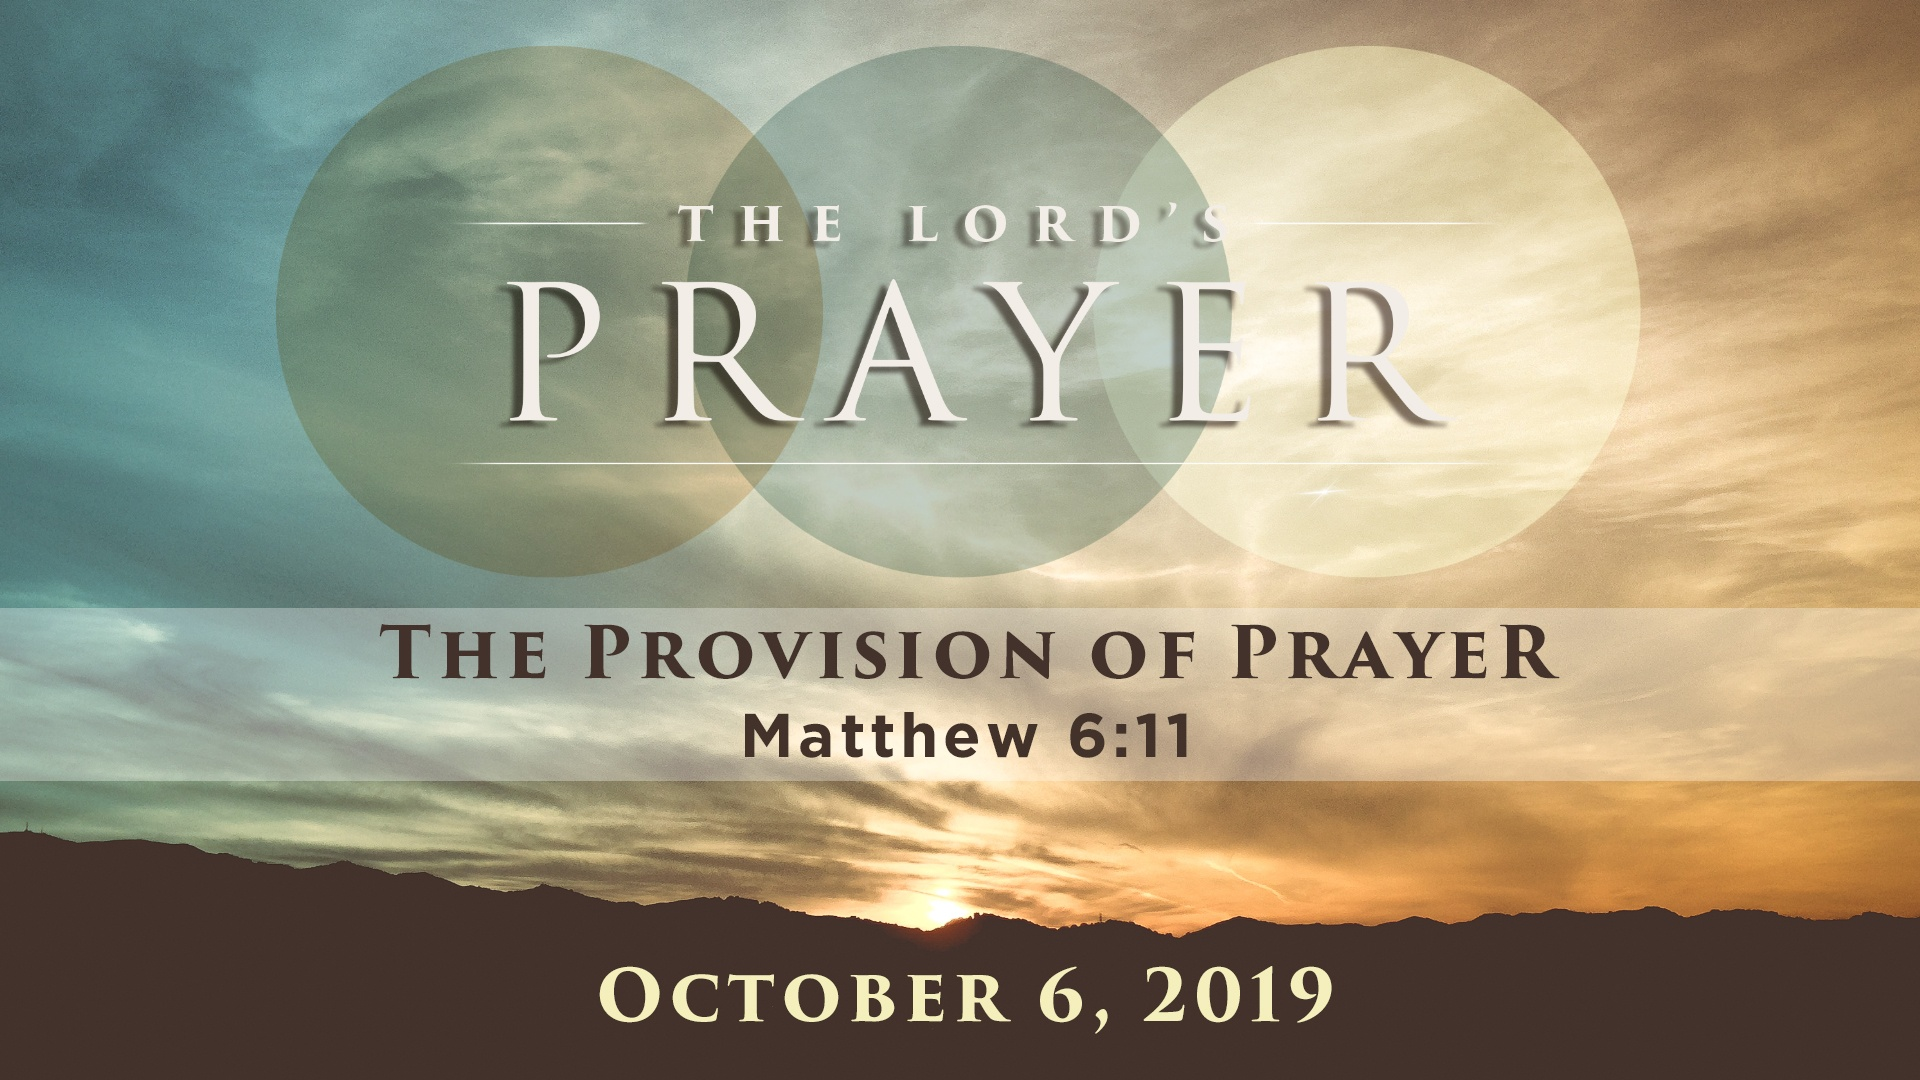 The Lord's Prayer: The Provision of Prayer